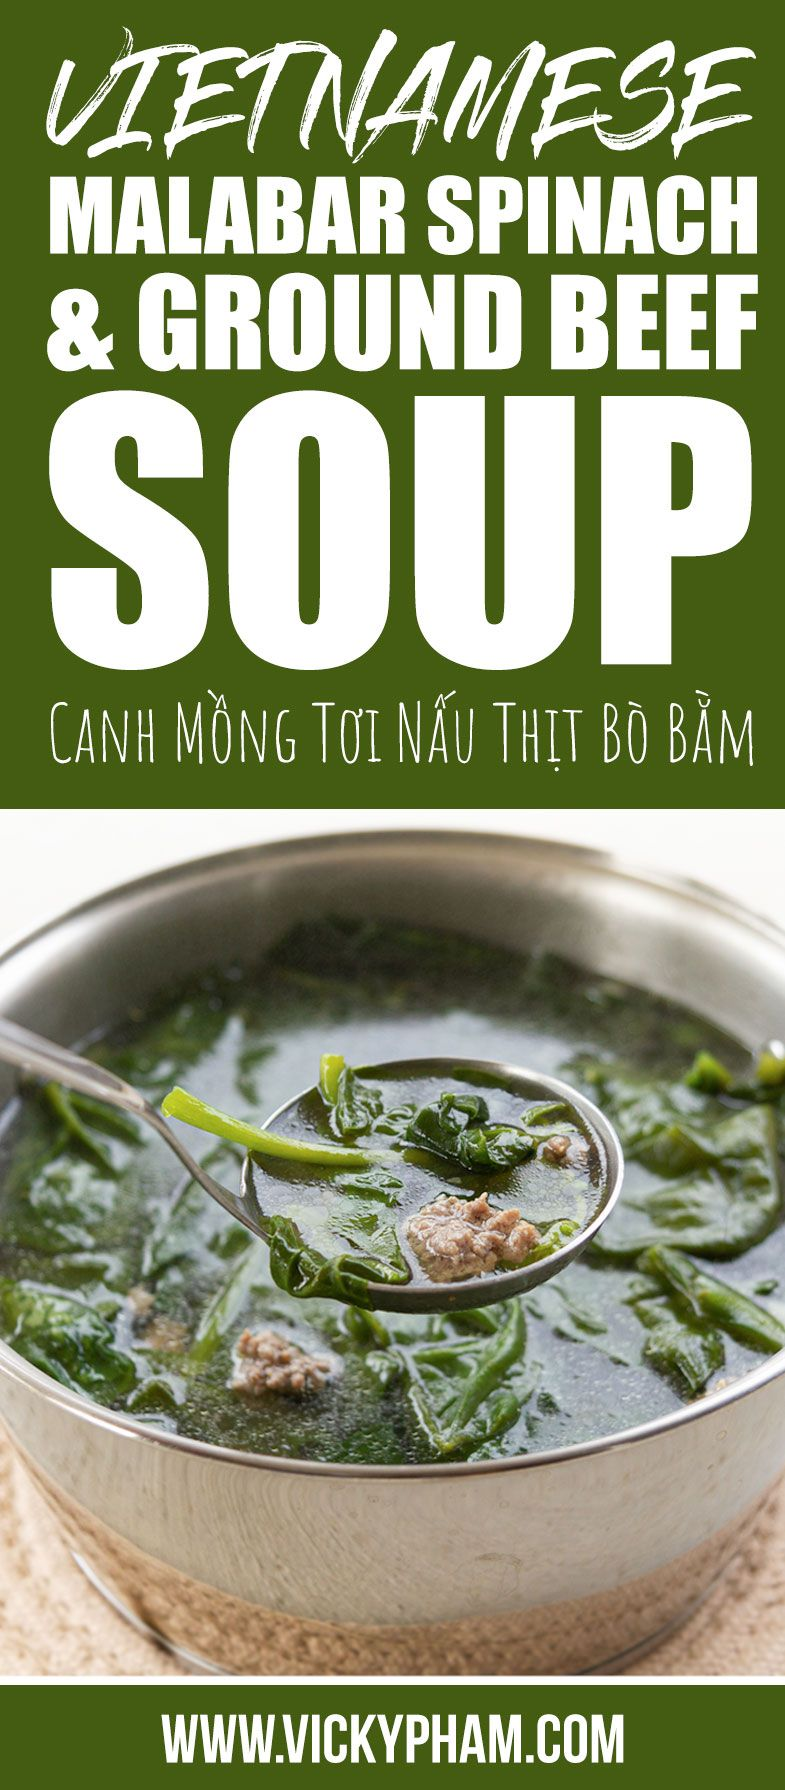 Vietnamese Malabar Spinach Ground Beef Soup Canh Mồng Tơi Nấu Thịt Bo Bằm Vietnamese Home Cooking Recipes Recipe In 2020 Soup With Ground Beef Healthy Ground Beef Beef Soup